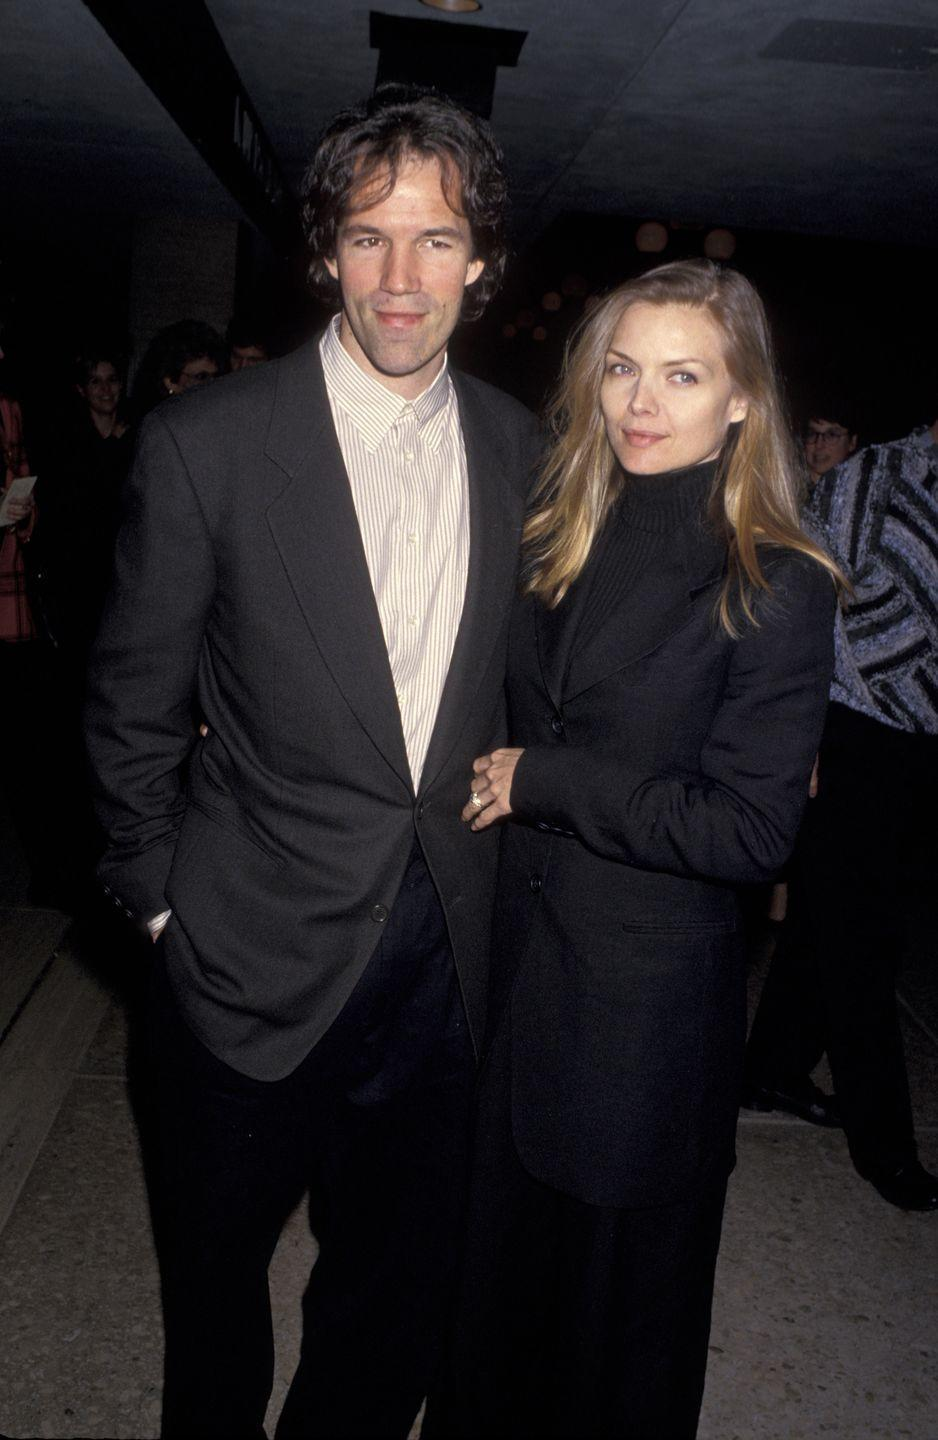 <p>The Scarface actor and the Big Little Lies writer met and married in 1993.</p>